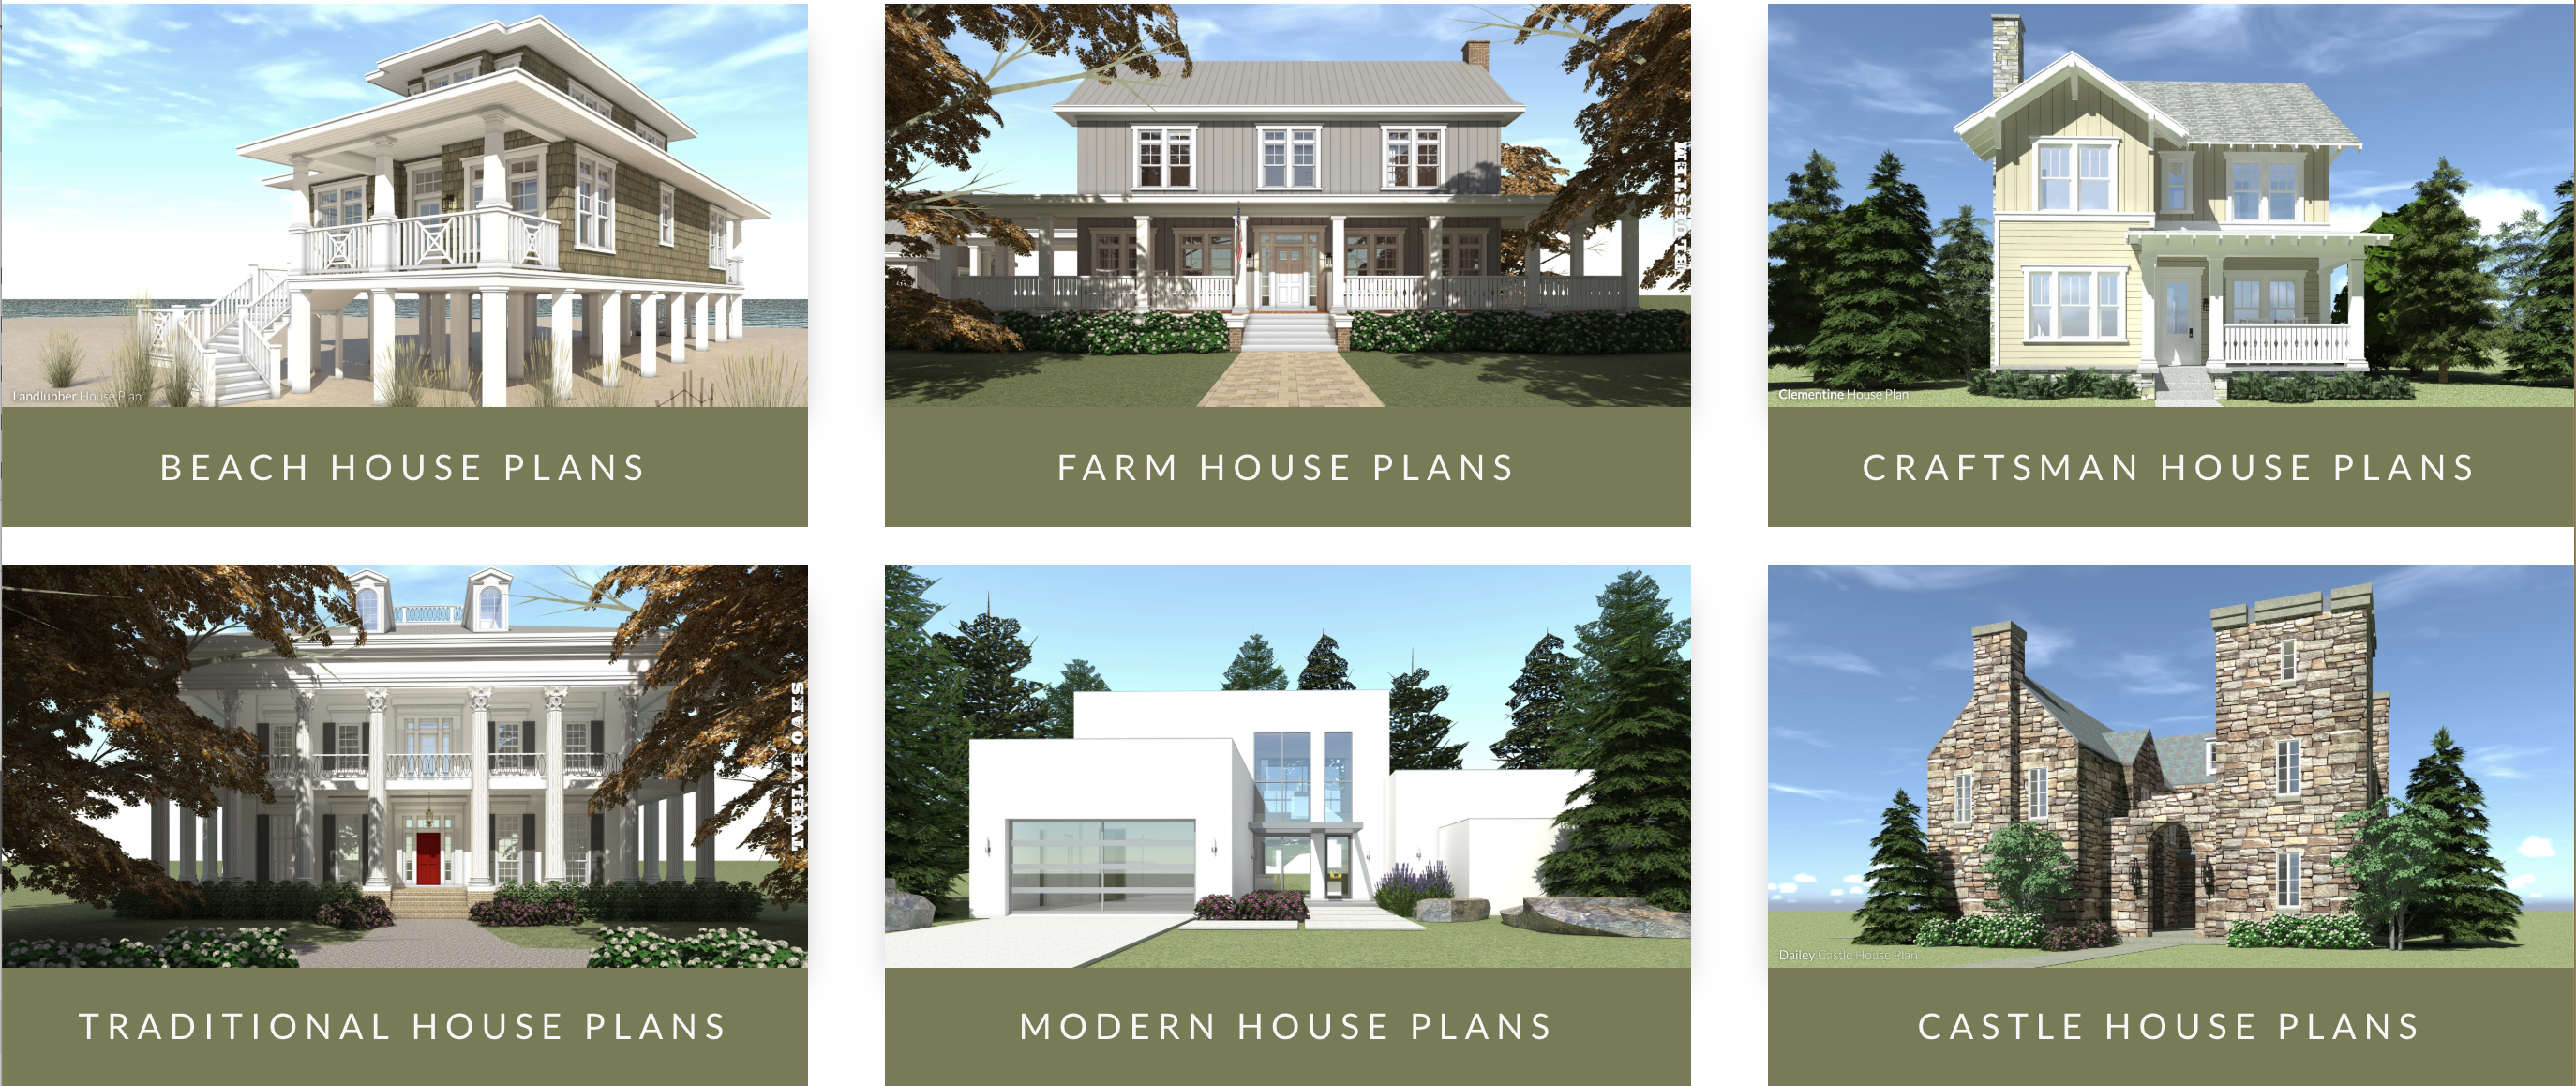 House Plans by Tyree House Plans. Your Dream Home is Real. on wood castle plans, ancient castle floor plans, scottish castle floor plans, castle house plans, concrete castle plans, log castle plans, scottish mansion house plans,